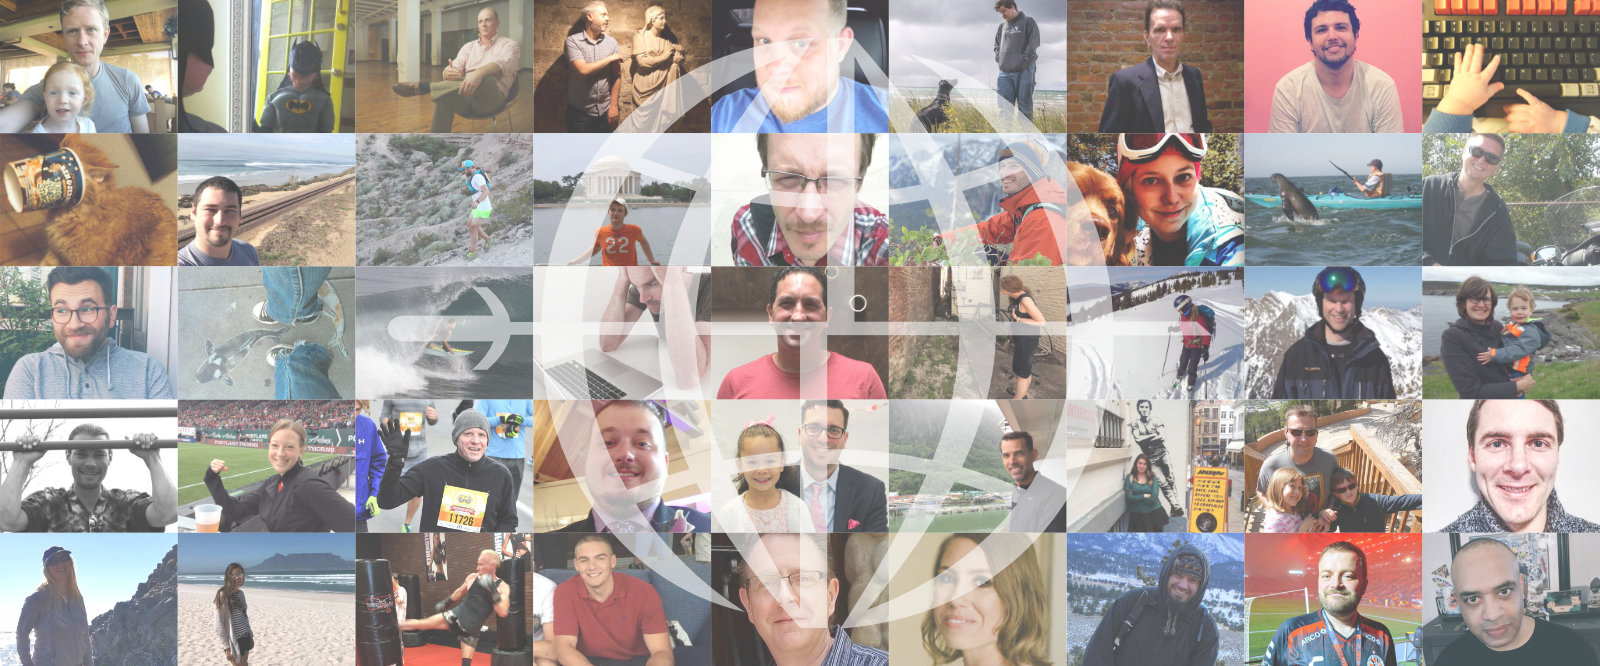 grid of all the people at network ninja